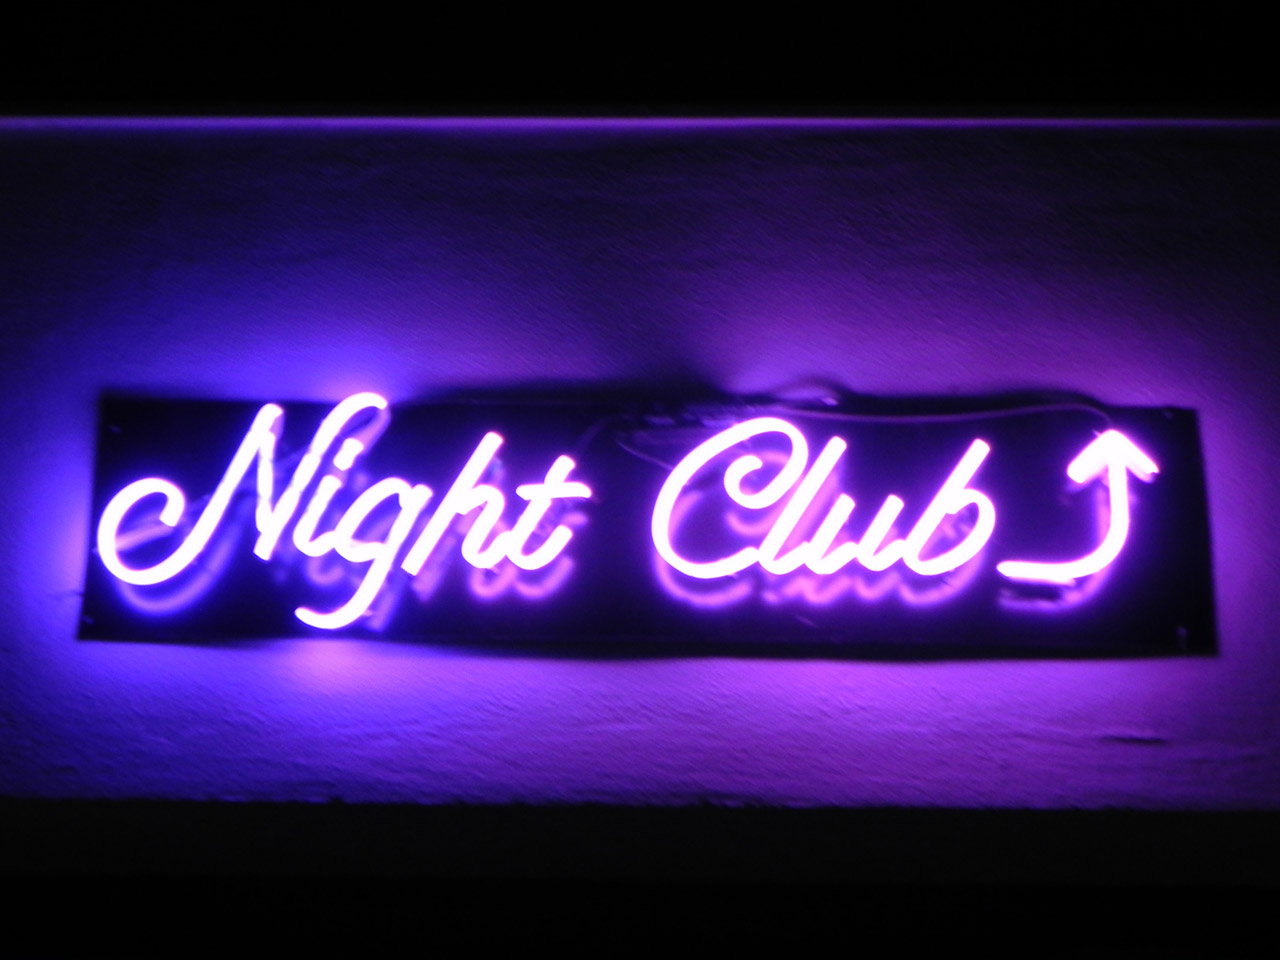 File:Nightclub-in-neon-108681294533967qk7.jpg